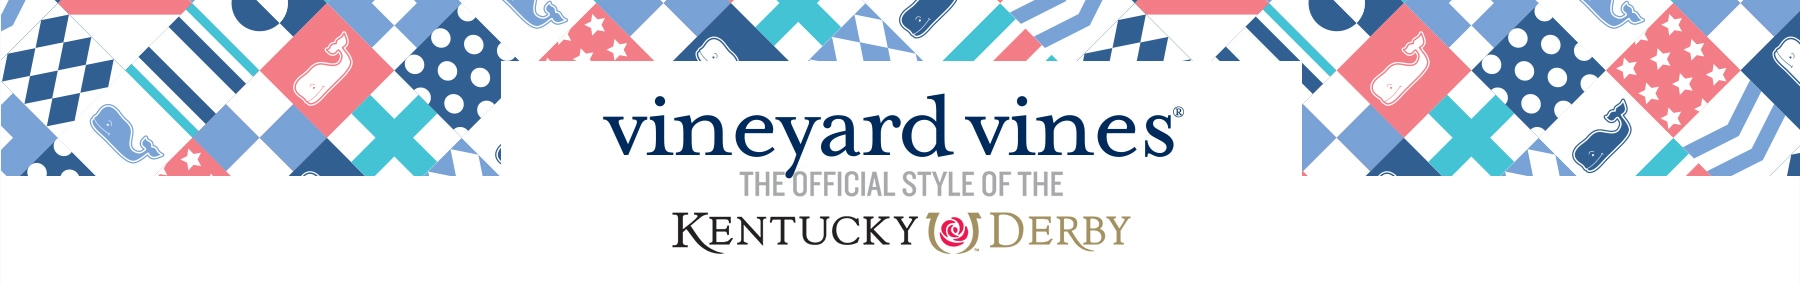 vineyard vines. The official style of the Kentucky Derby.